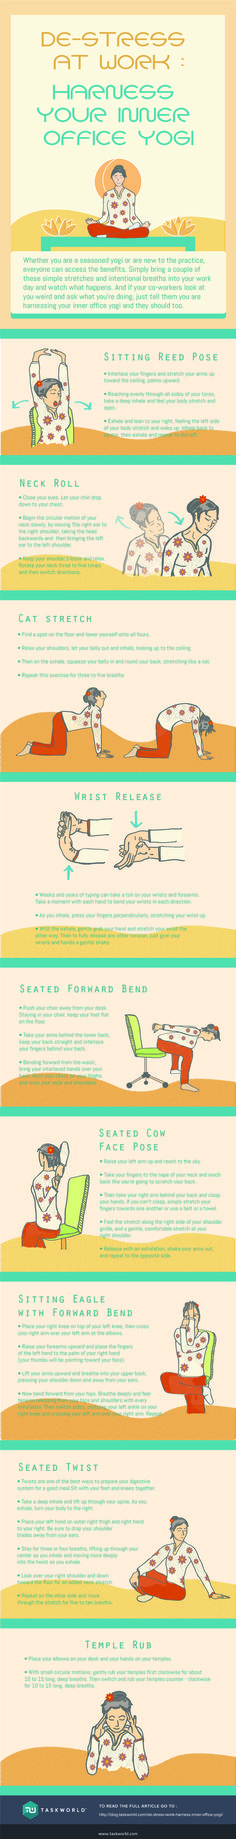 9 Yoga Positions To Destress at Work #Infographic